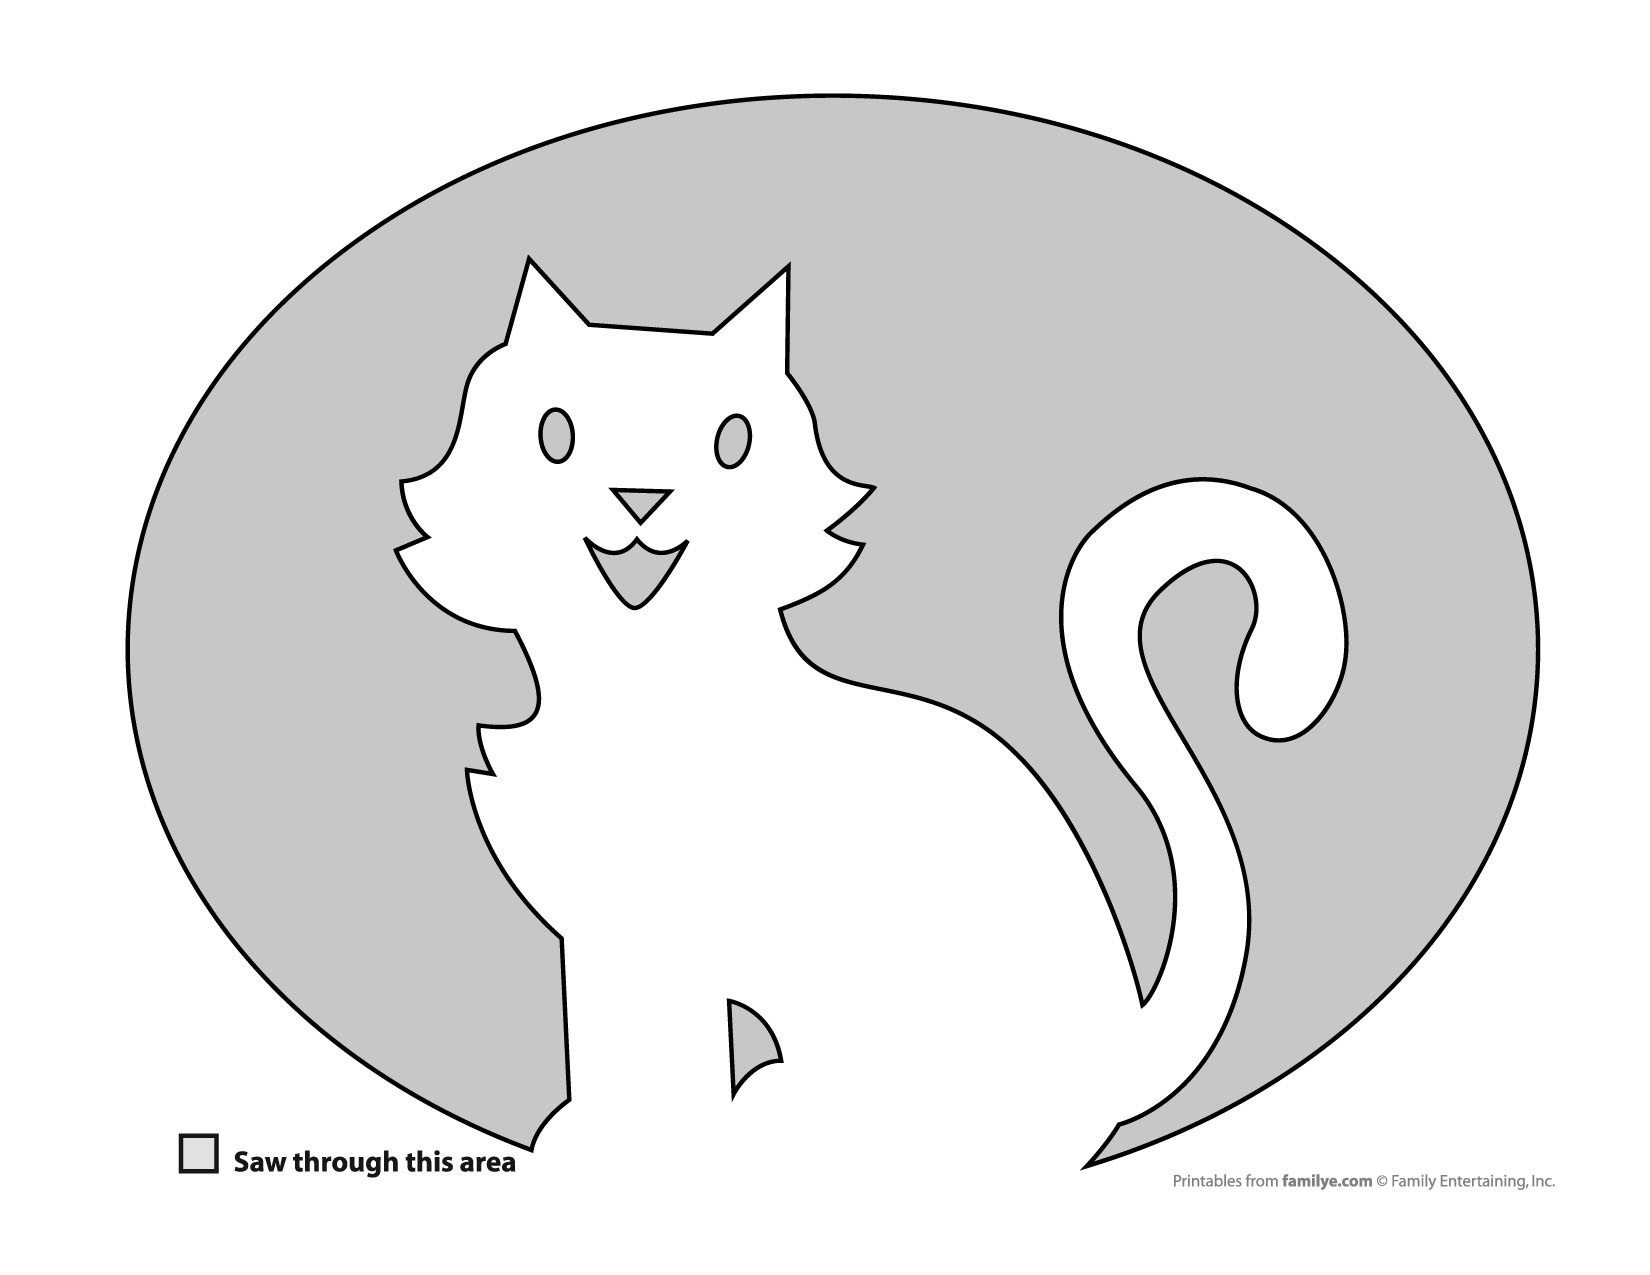 31 Free Pumpkin Carving Stencils Of Cats For A Purrfect Halloween - Free Printable Pumpkin Carving Stencils For Kids